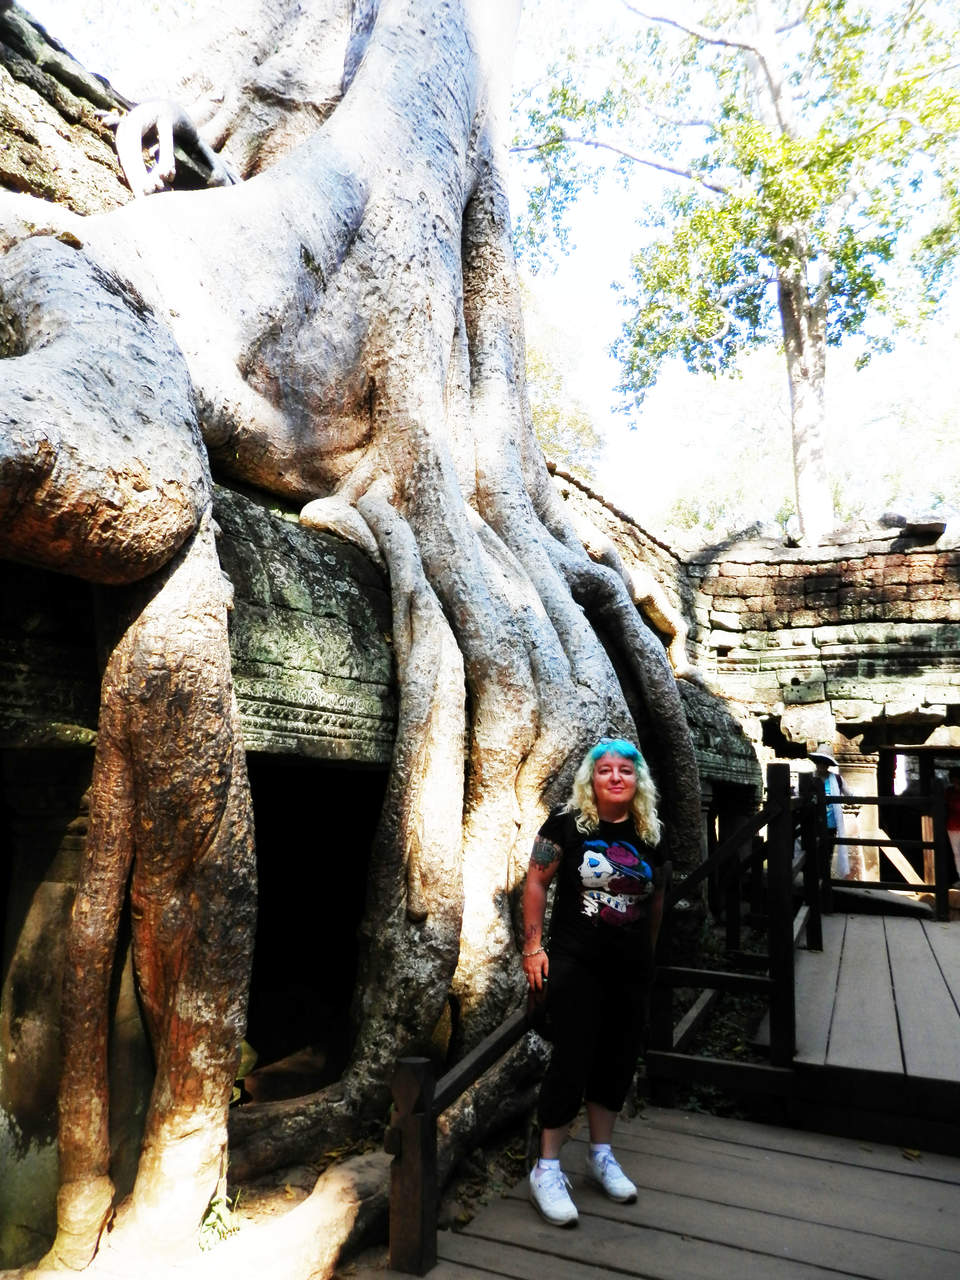 Taprohm3_Easy-Resize.com